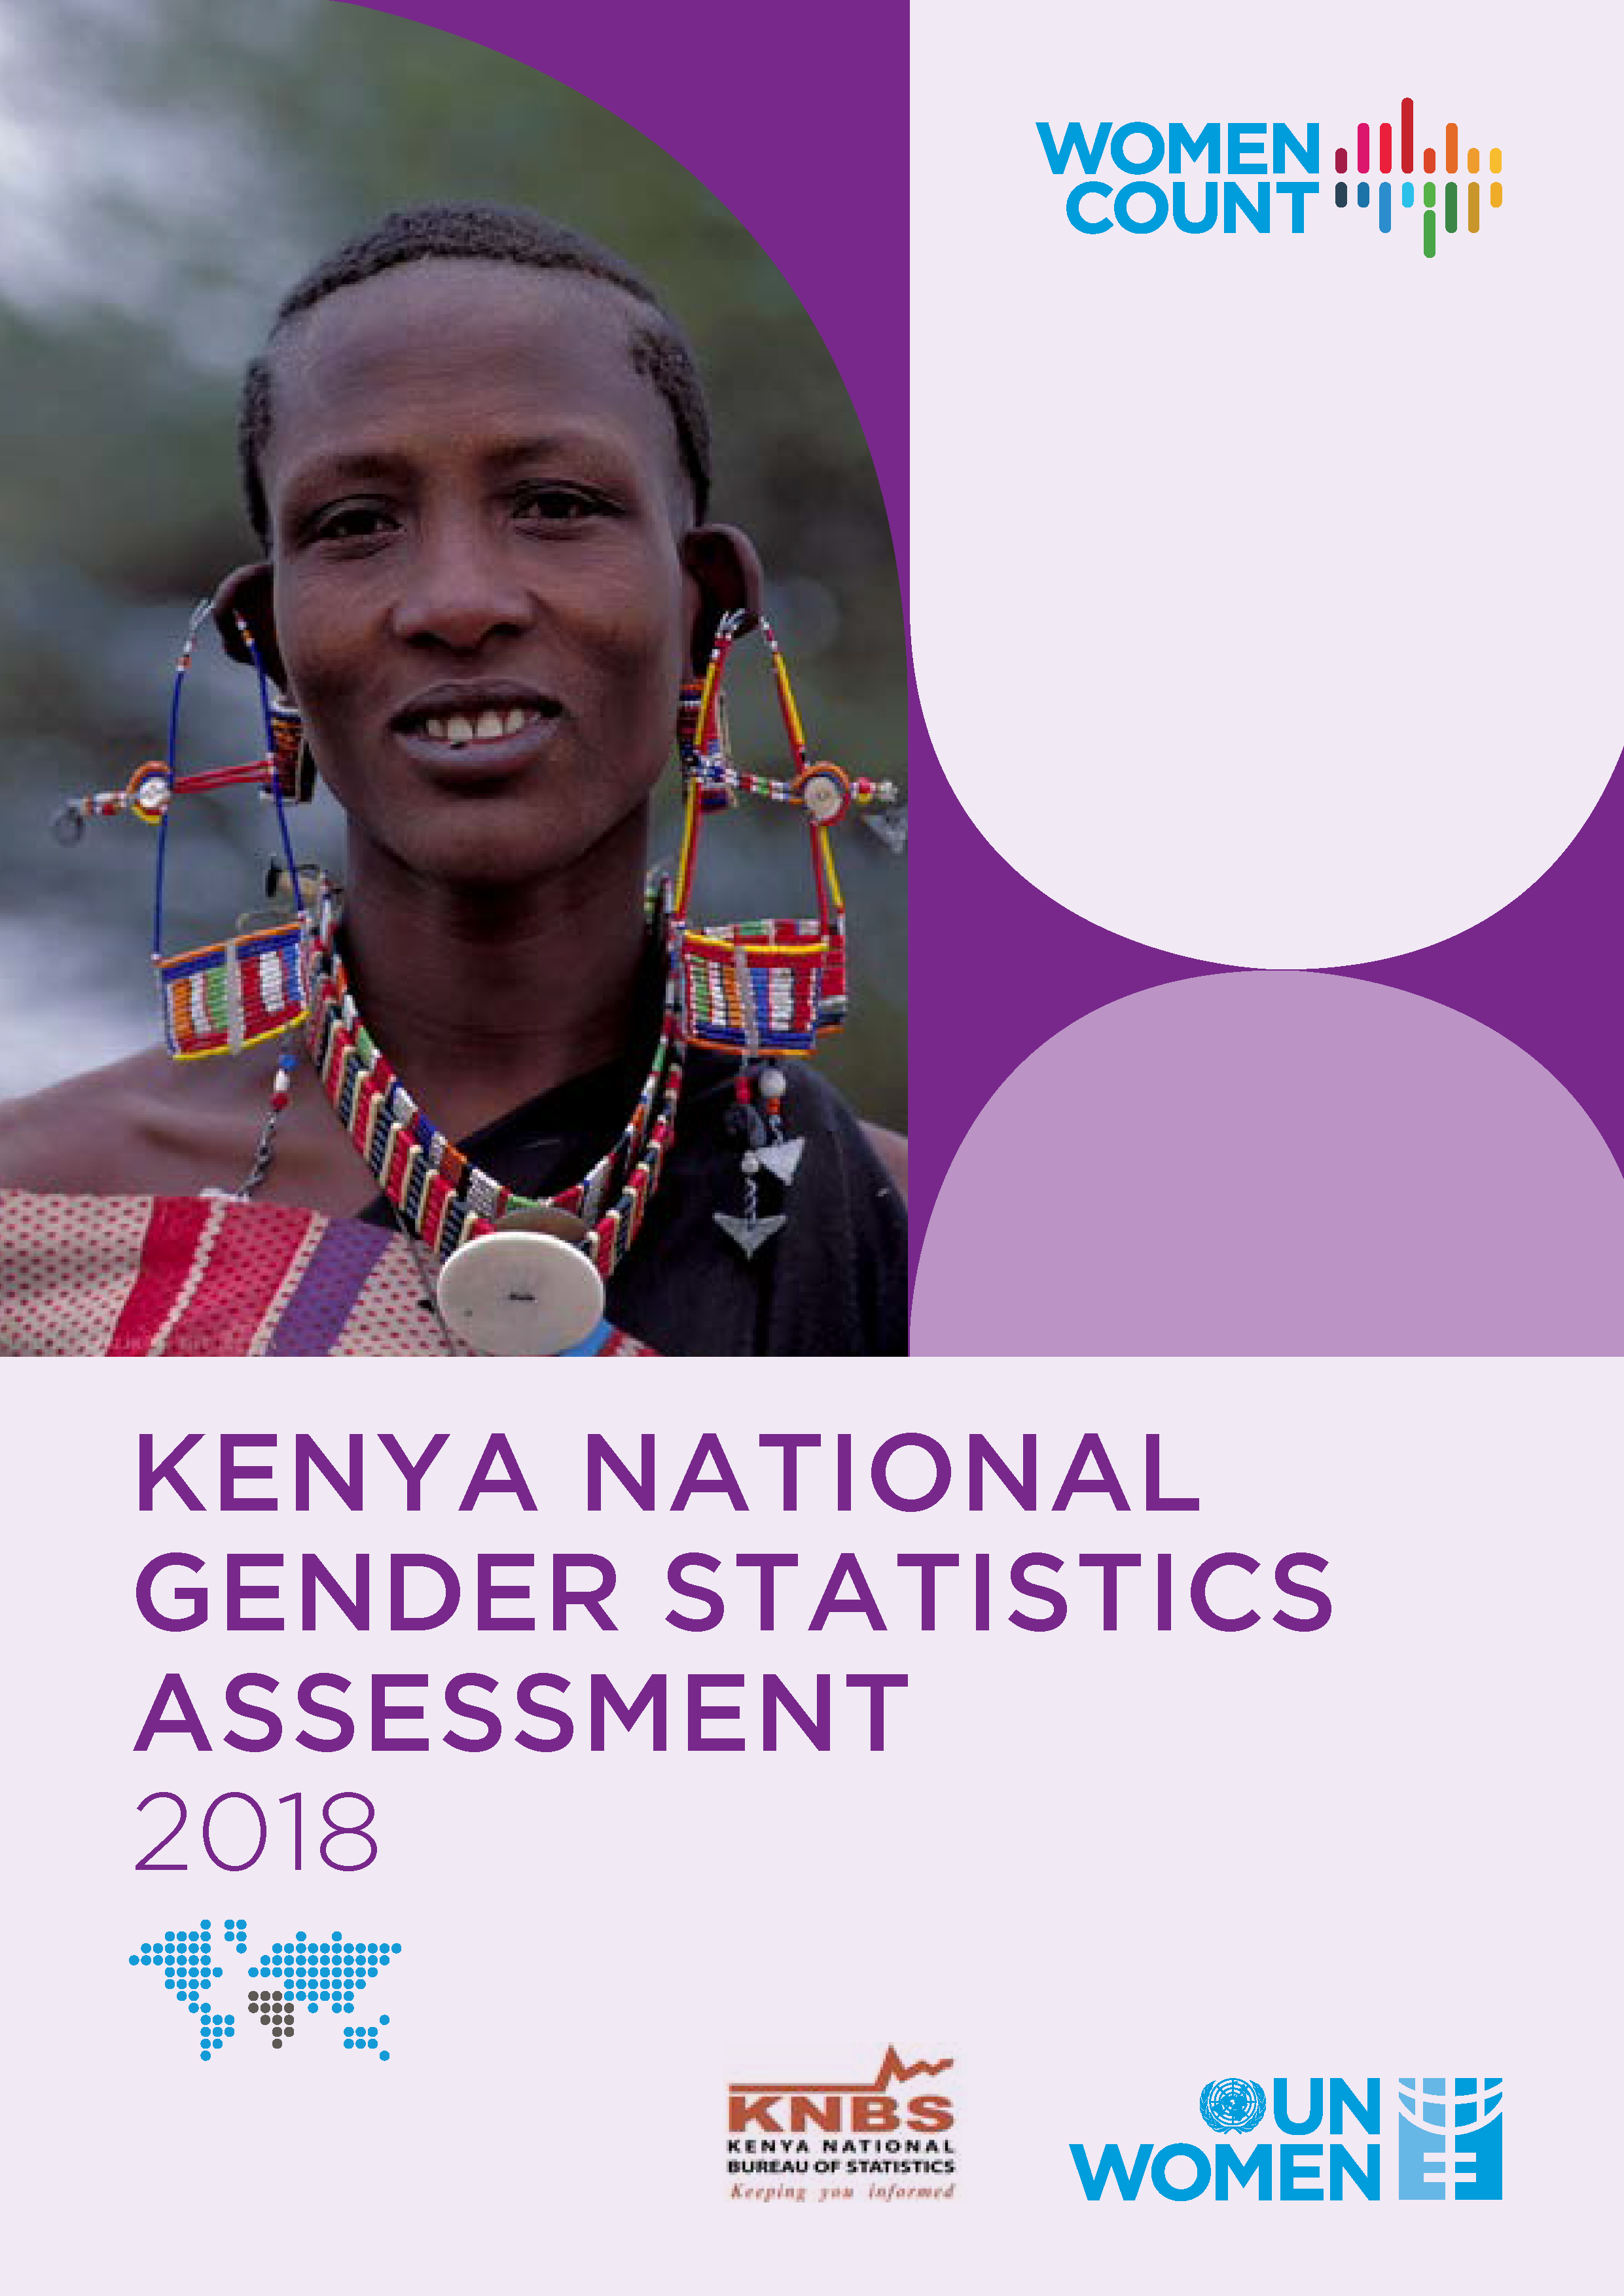 Kenya National Gender Statistics Assessment